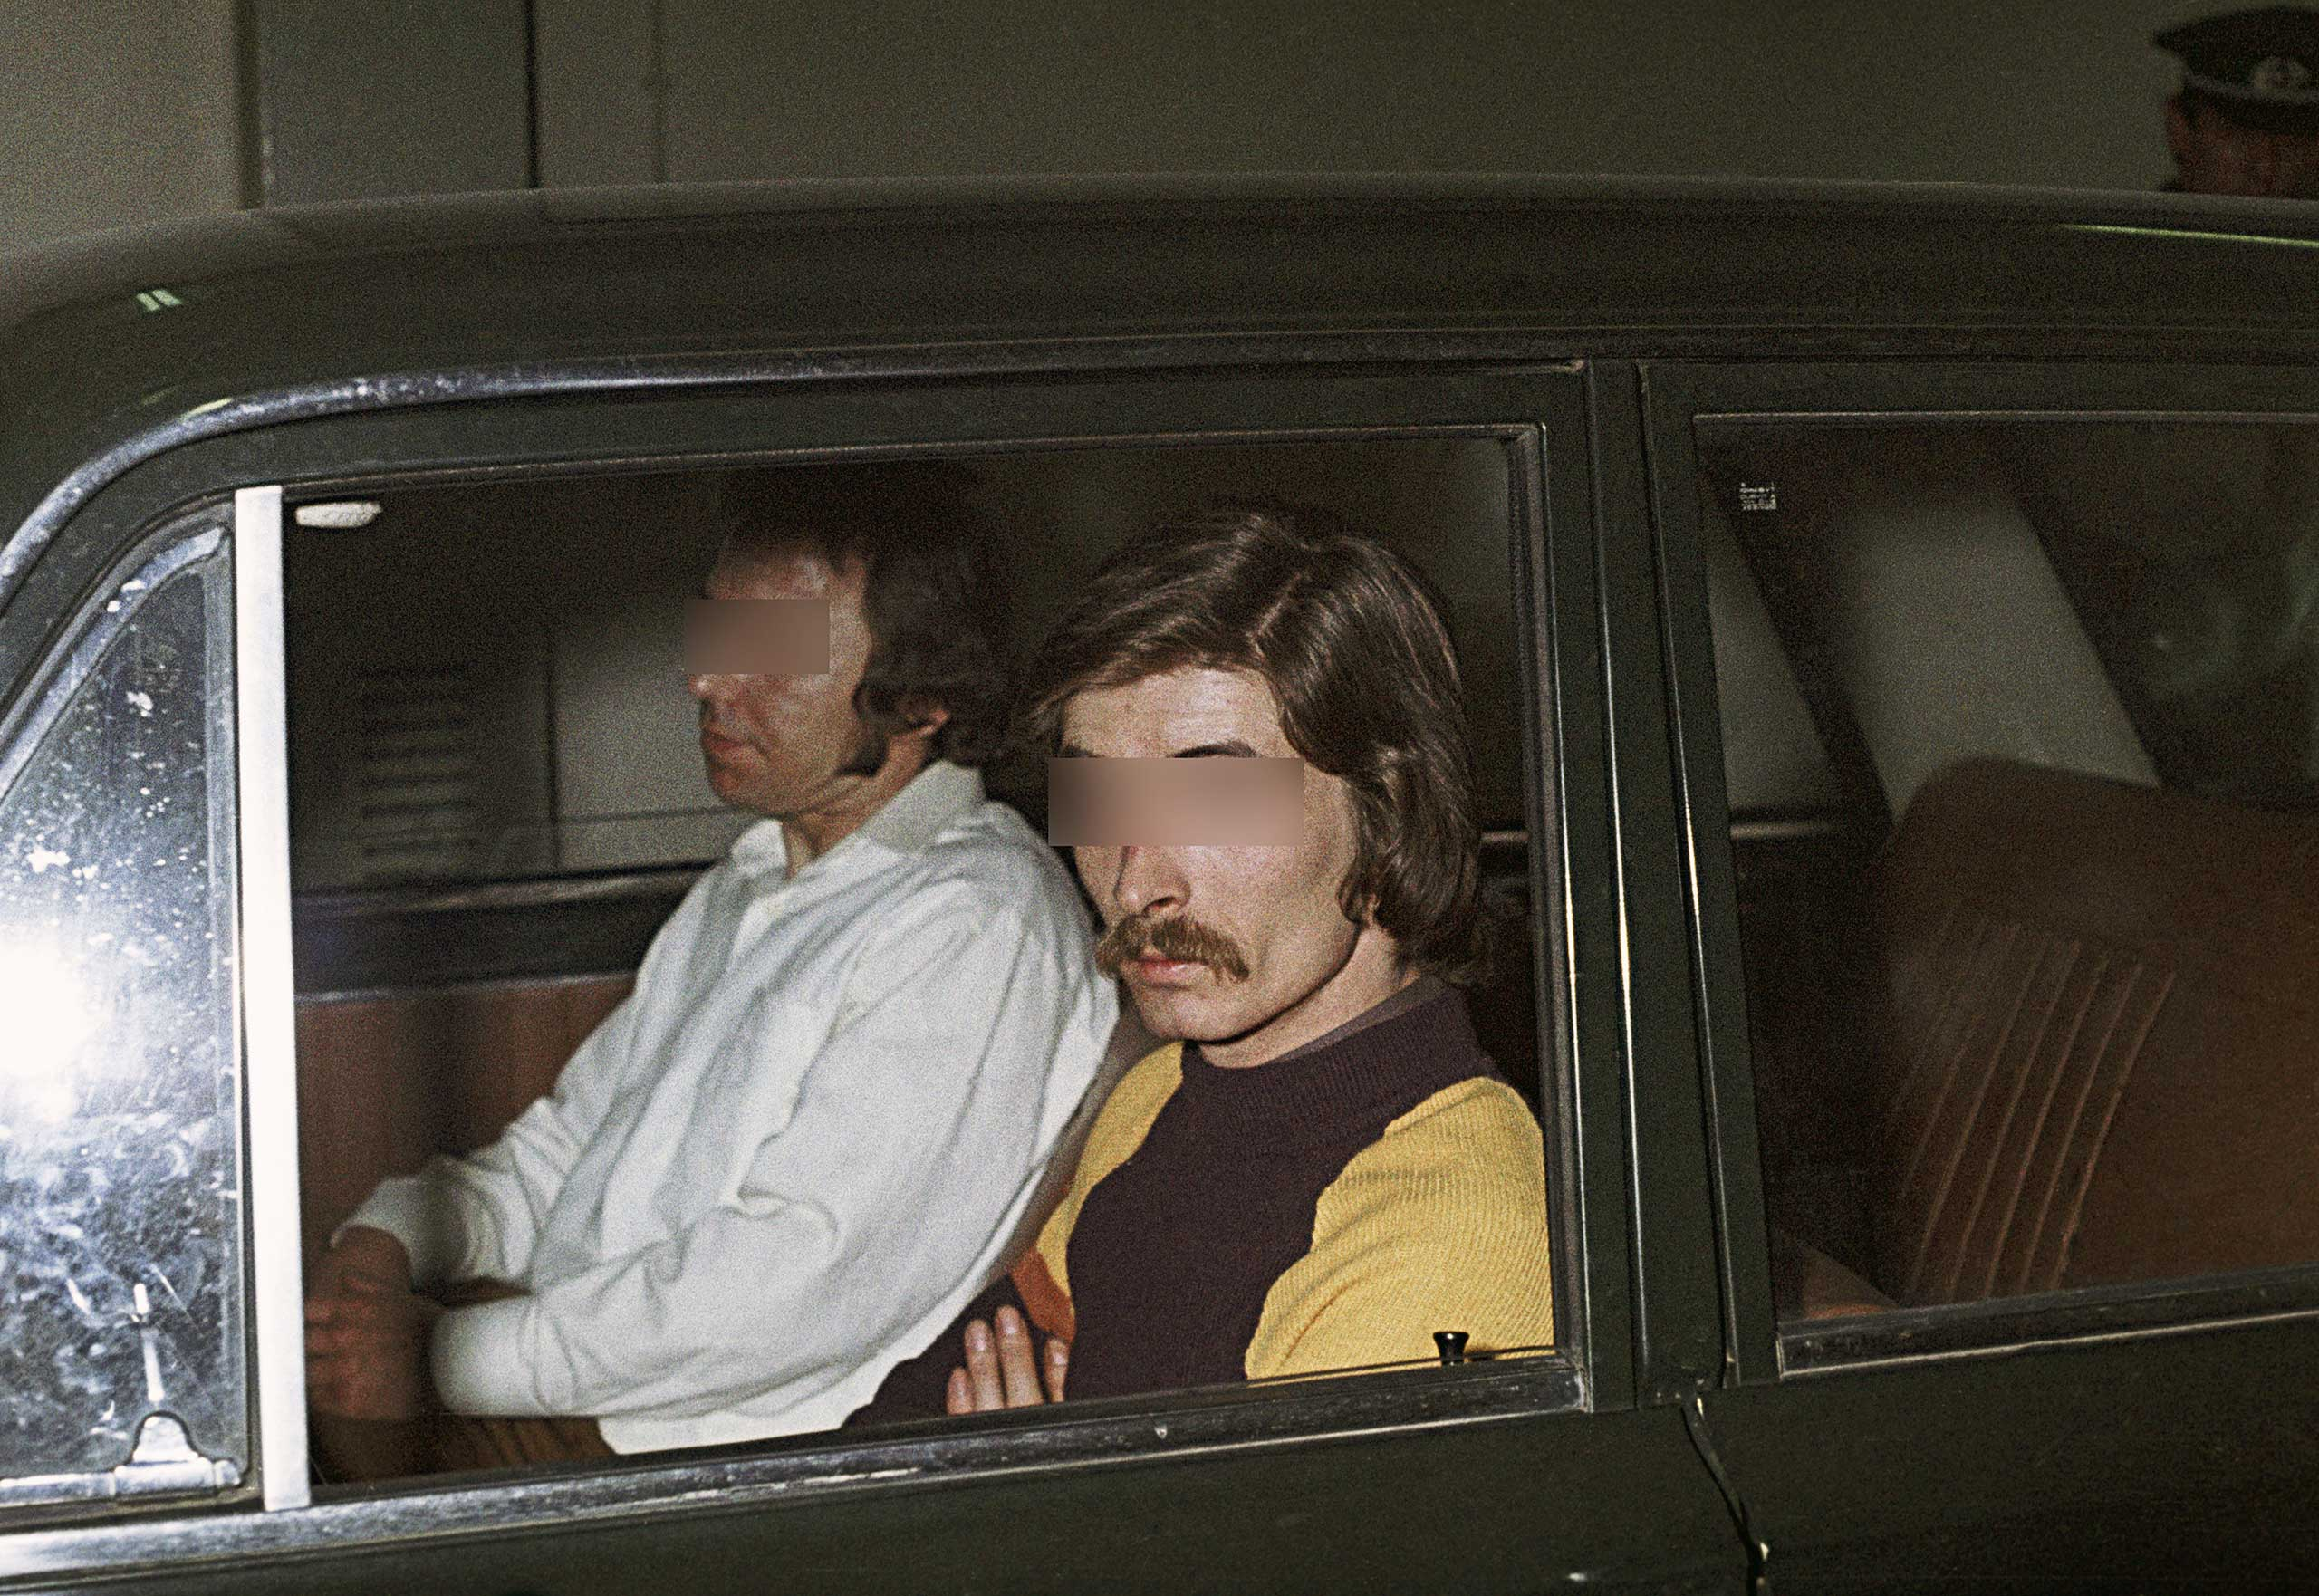 Reenactment of an escape attempt in a Fiat 124 car with Schweinfurt license plates. The attempt ended with the arrest of an escaping couple and the escape helper. The driver and front-seat passenger are reenactors. C. 1975.